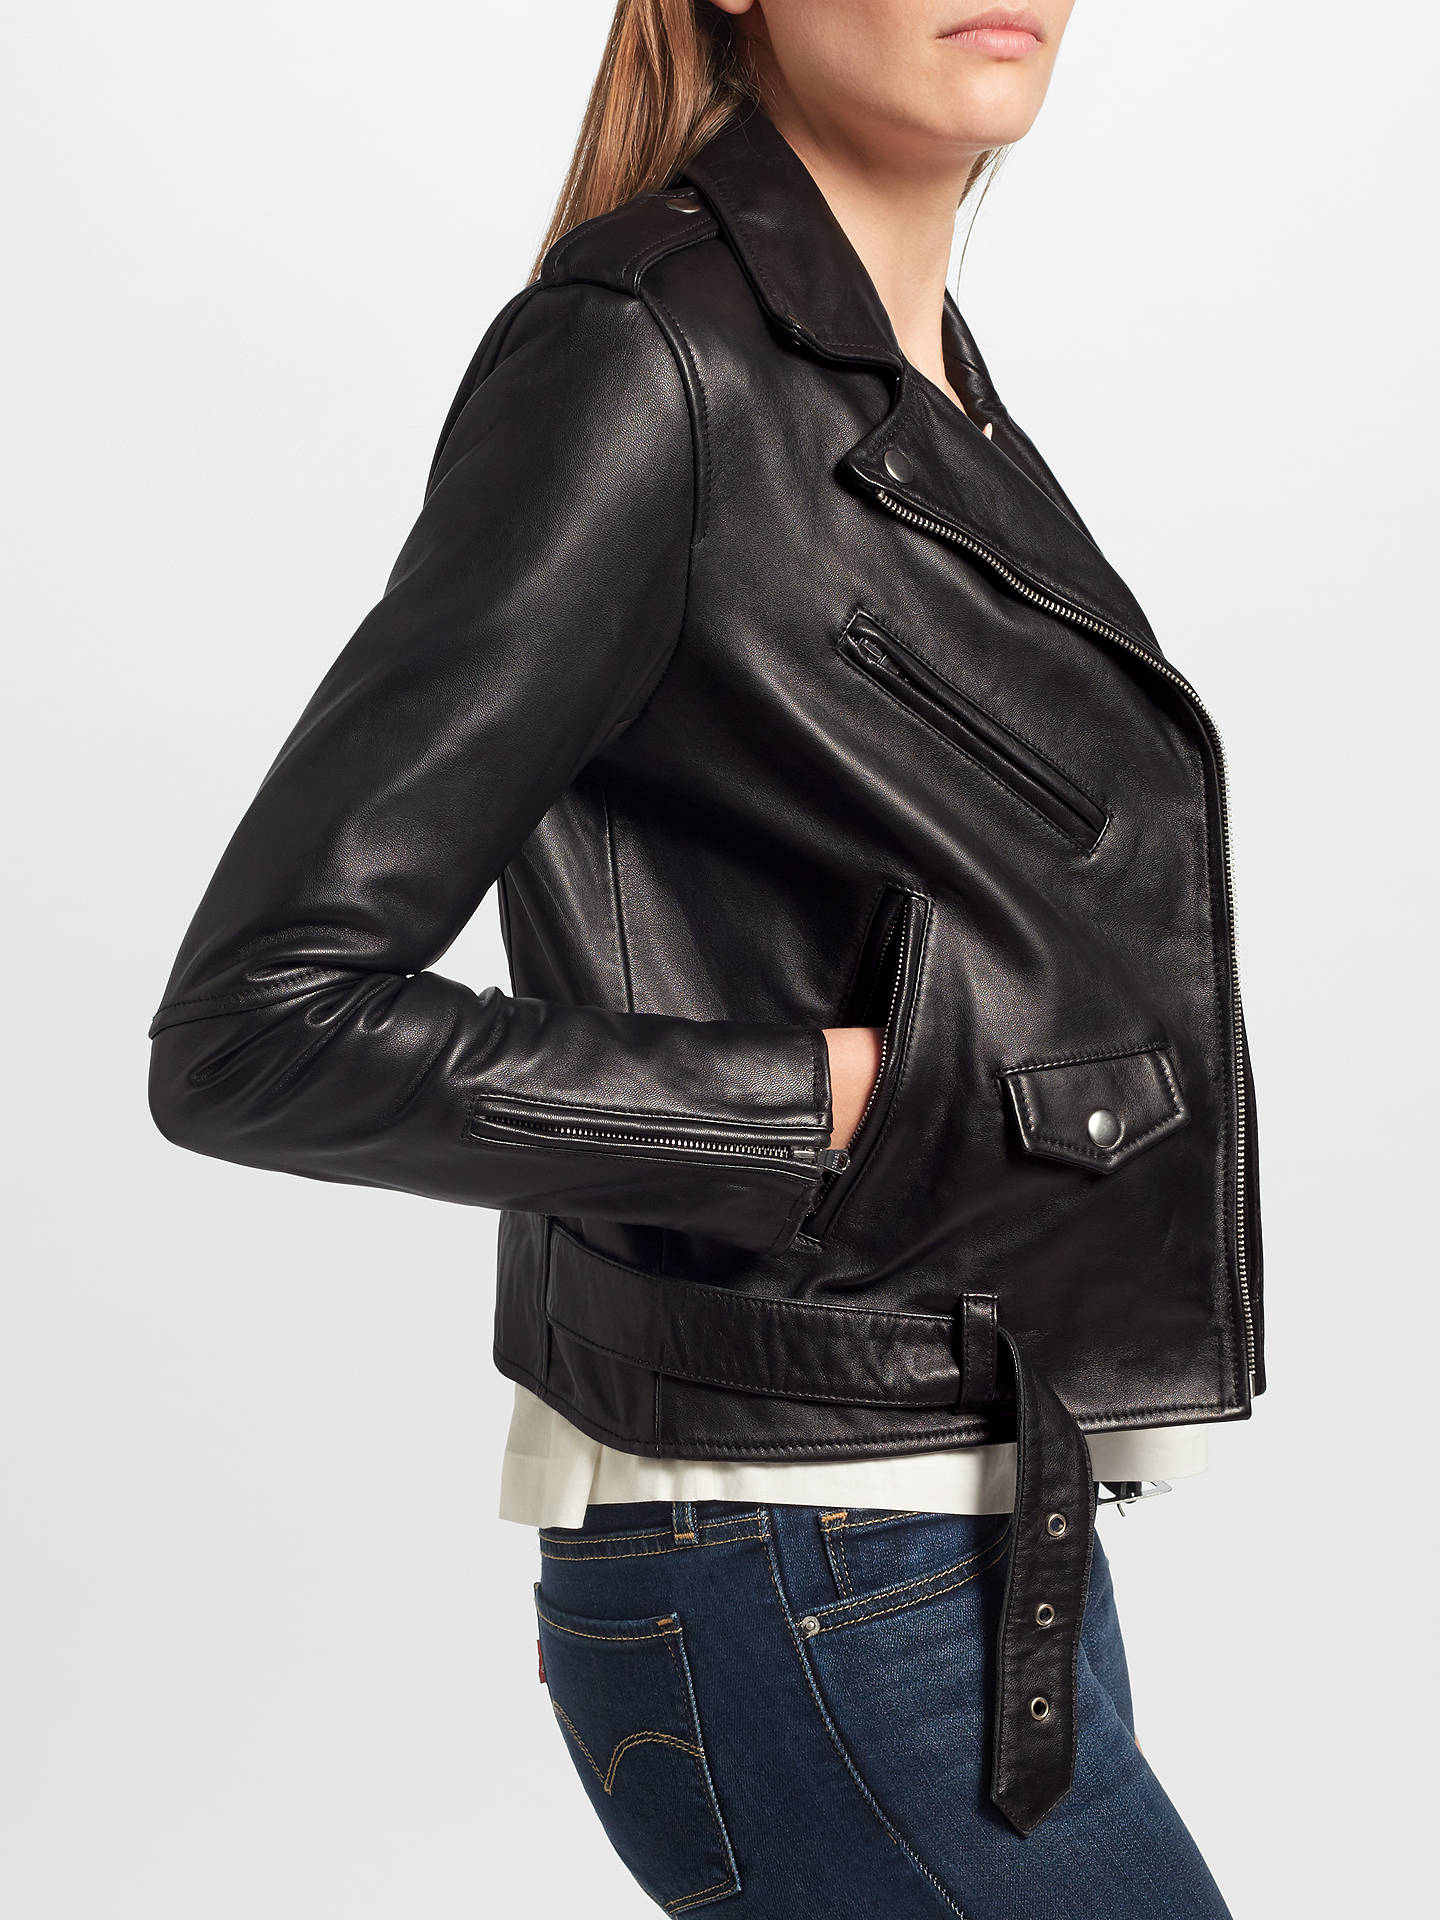 36e7f6426 Levi's Relaxed Leather Moto Jacket, Black at John Lewis & Partners